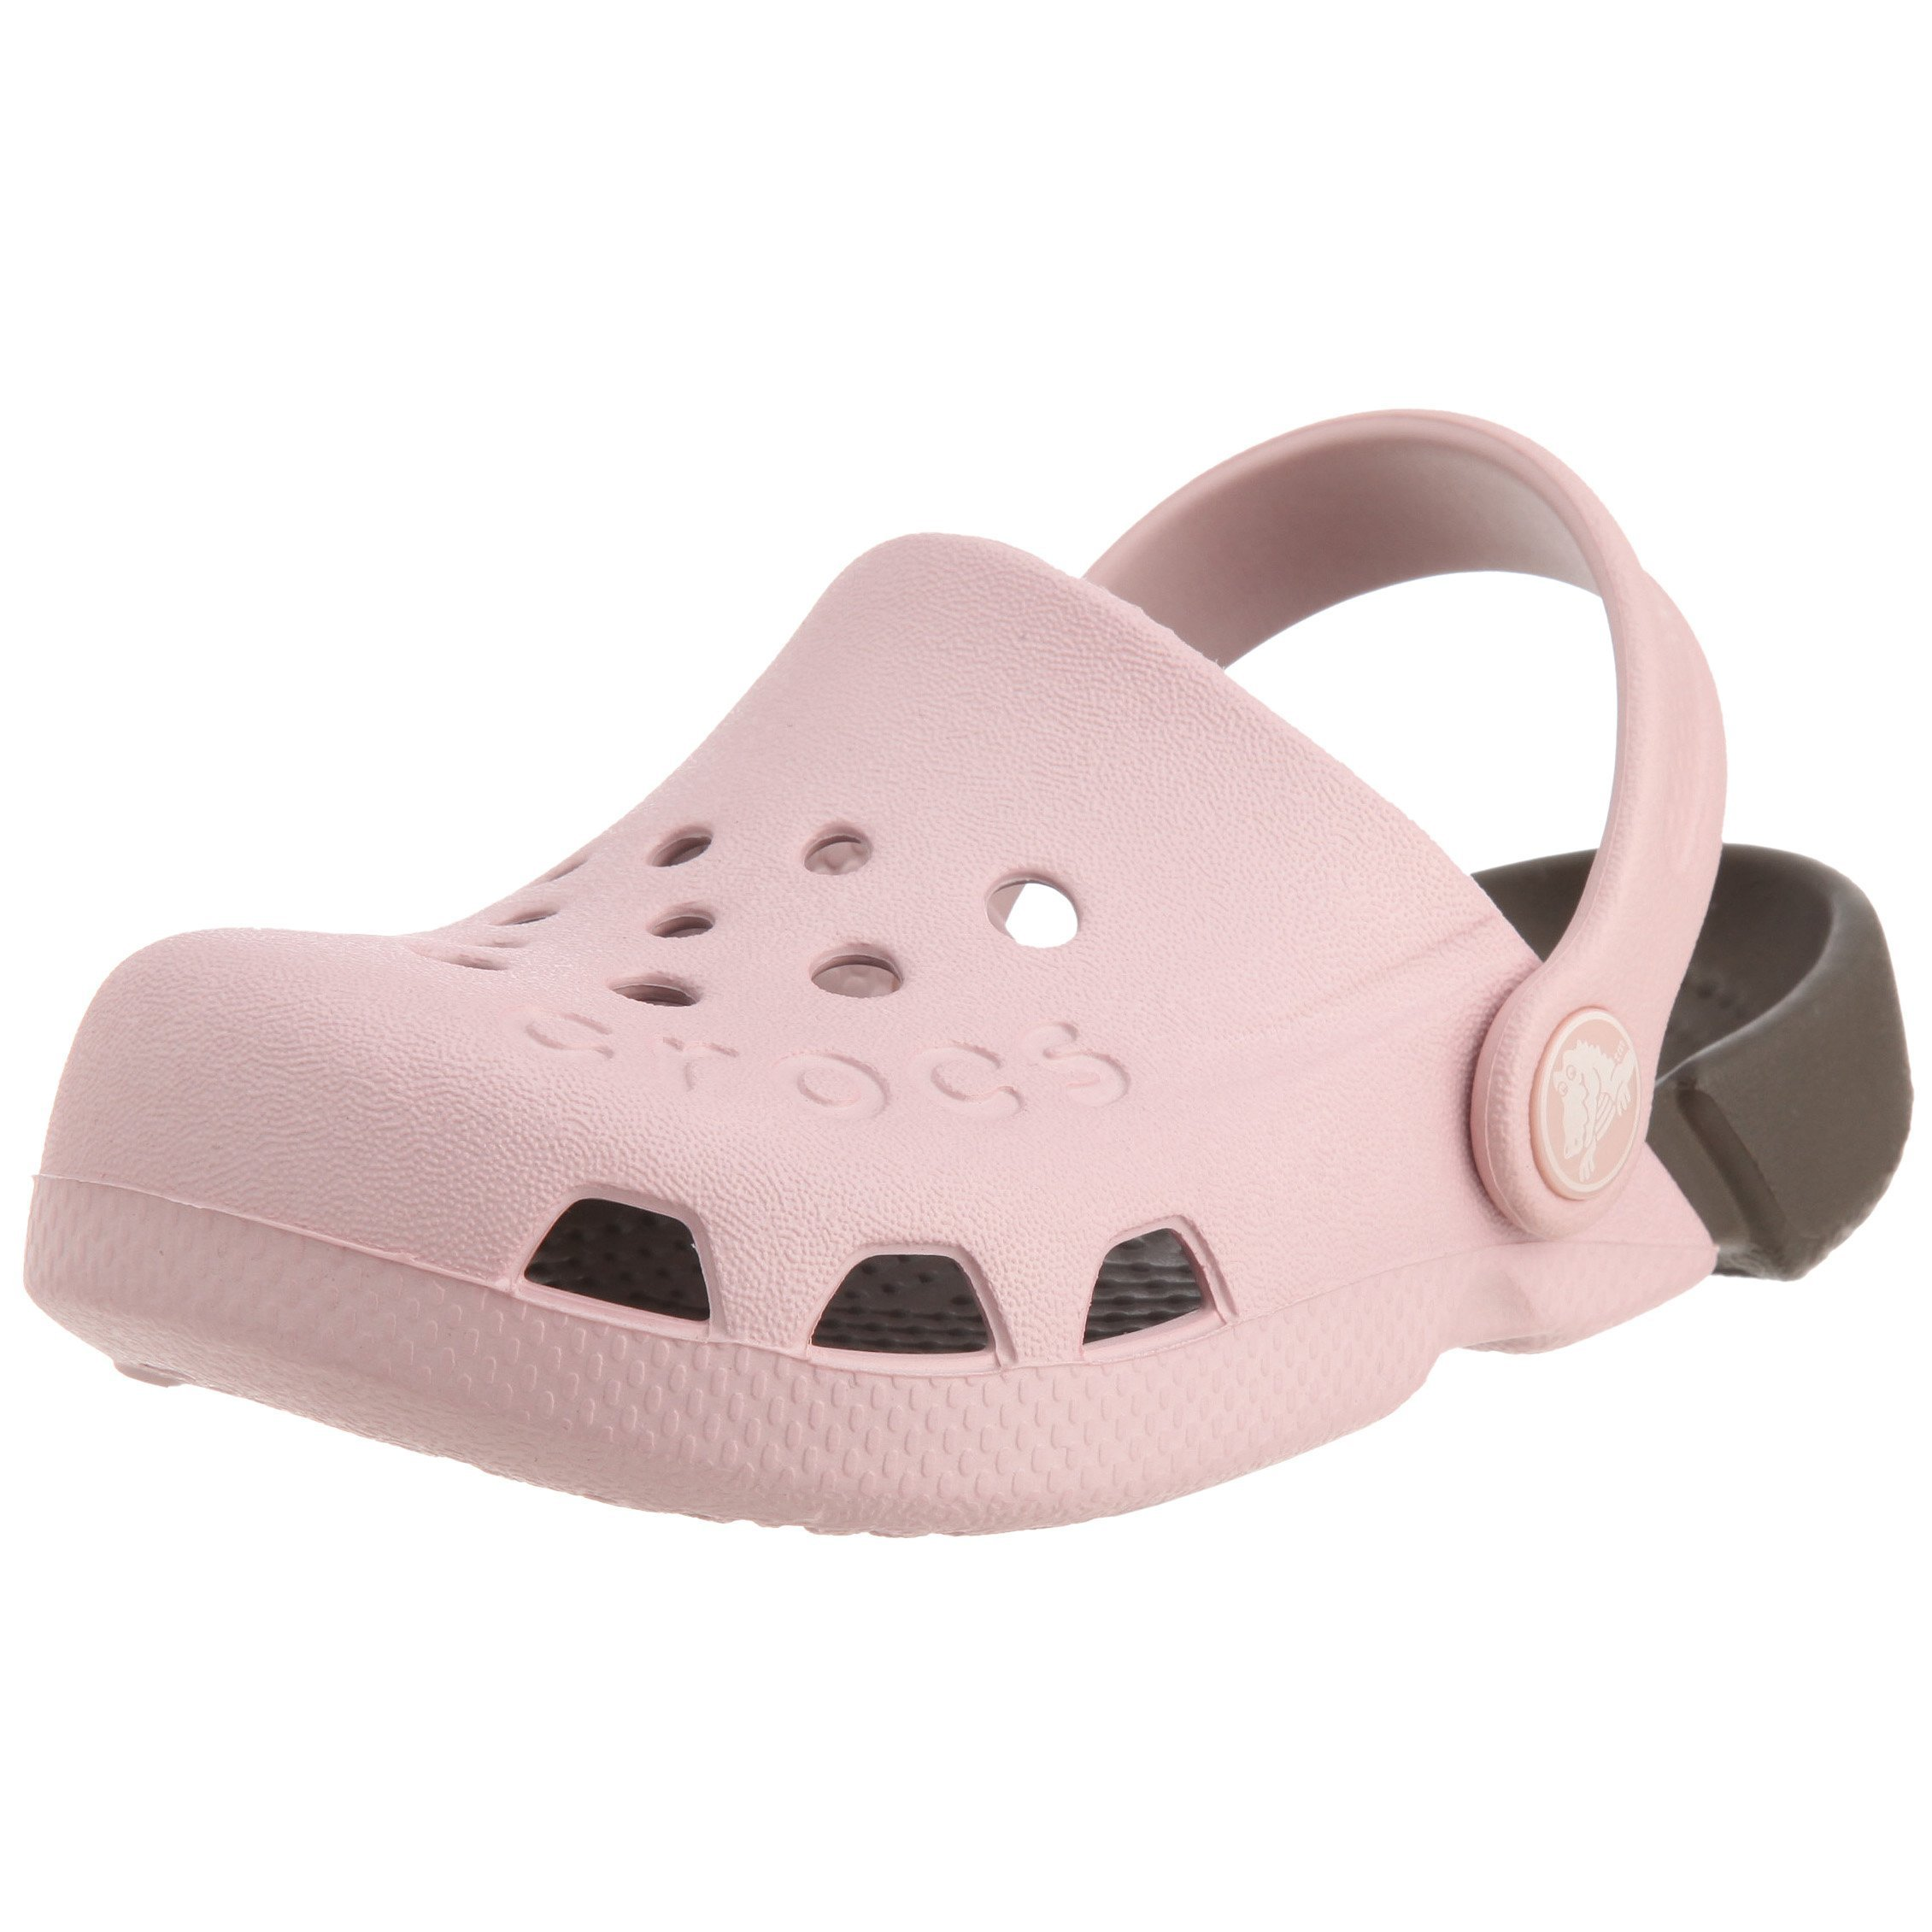 Crocs Electro Clog (Toddler/Little Kid),Cotton Candy/Chocolate,2 M US Little Kid